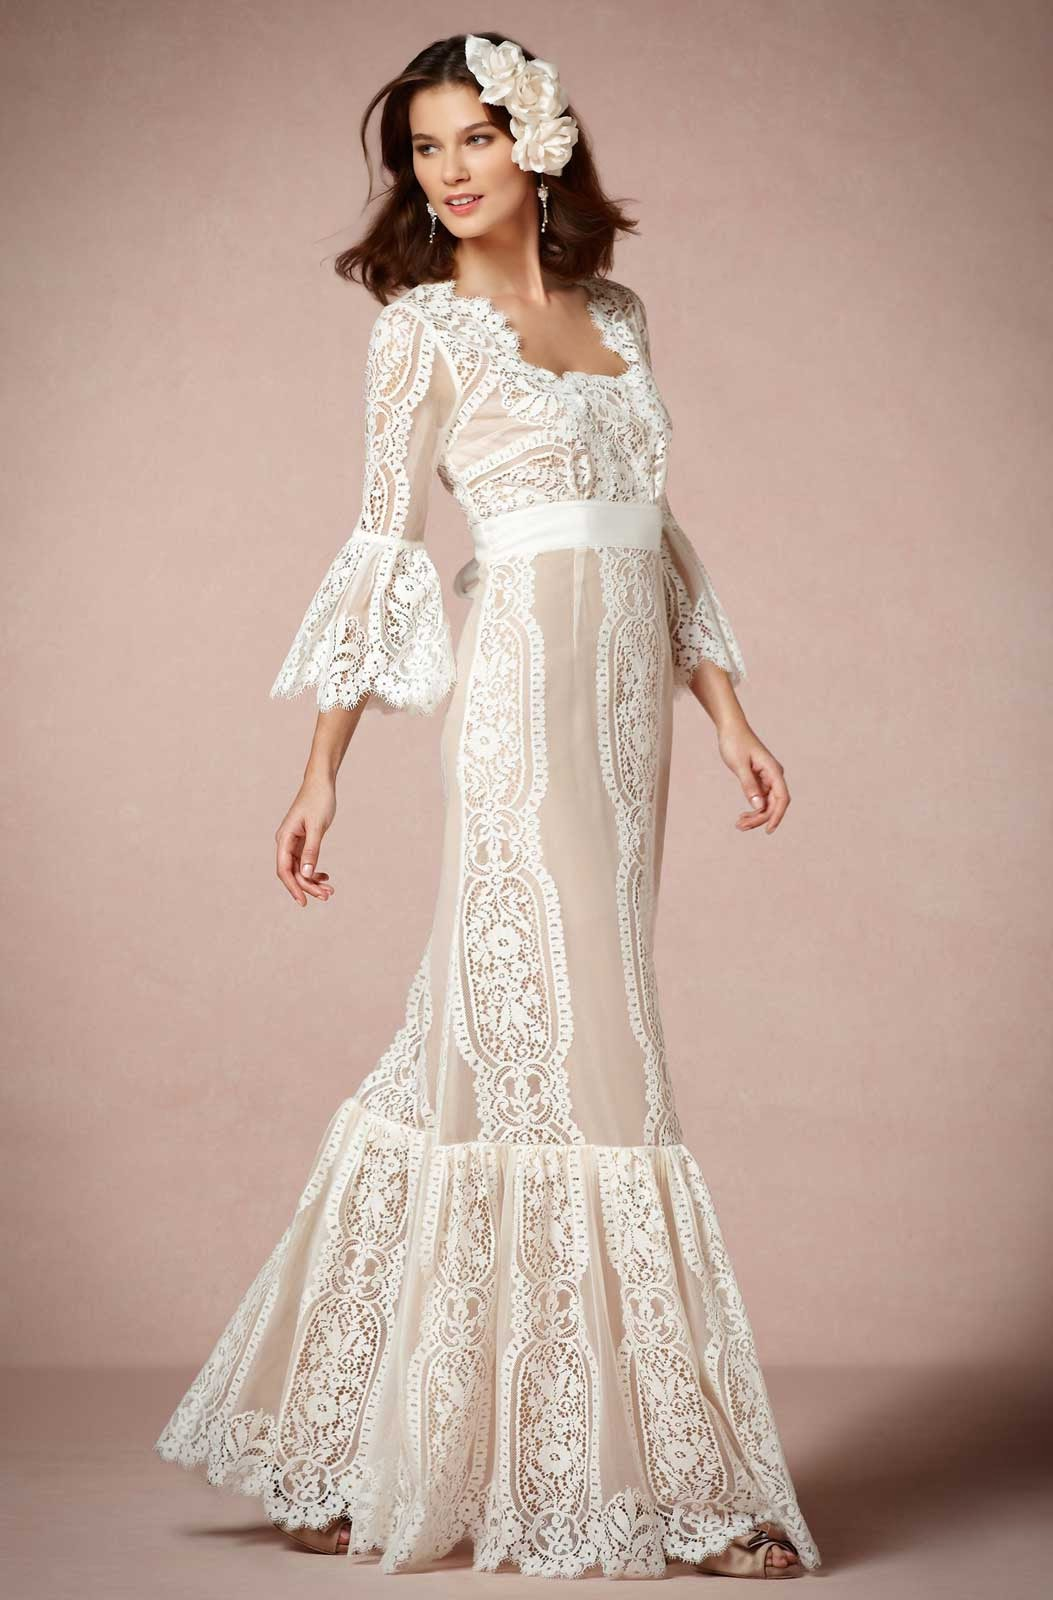 White camo style wedding dresses categories wedding dress resolution